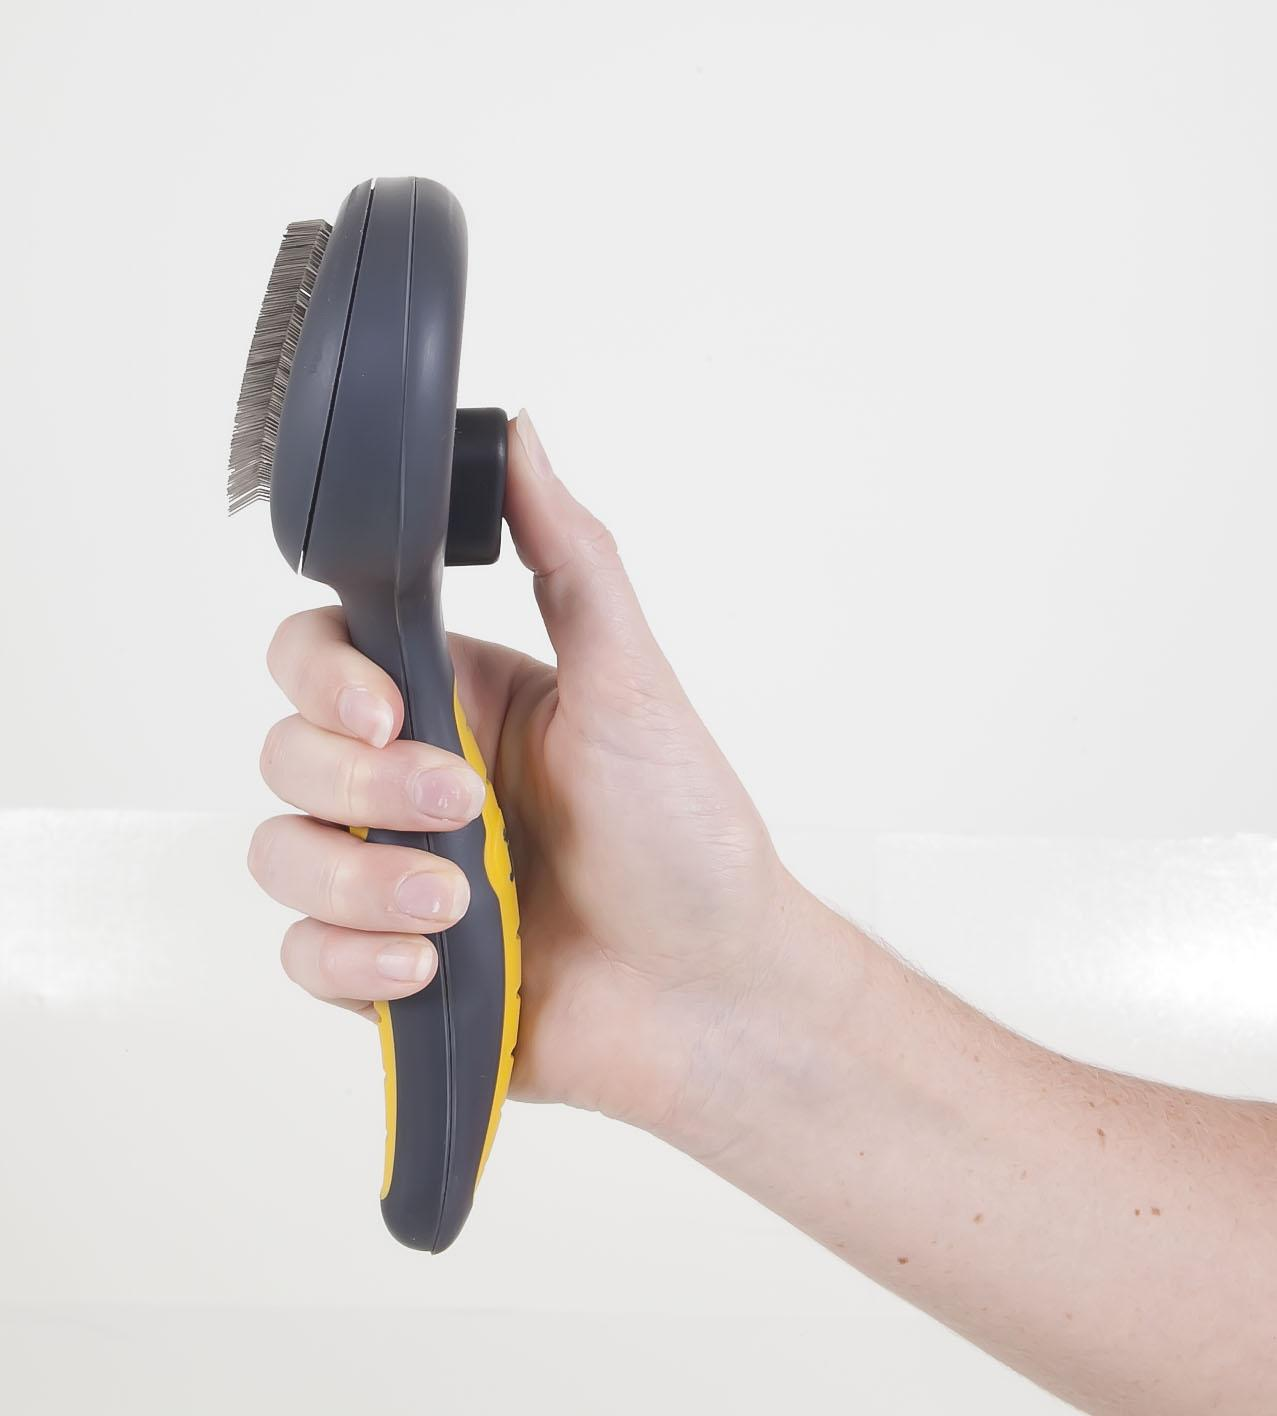 Gripsoft SELF-CLEANING SLICKER BRUSH - Small